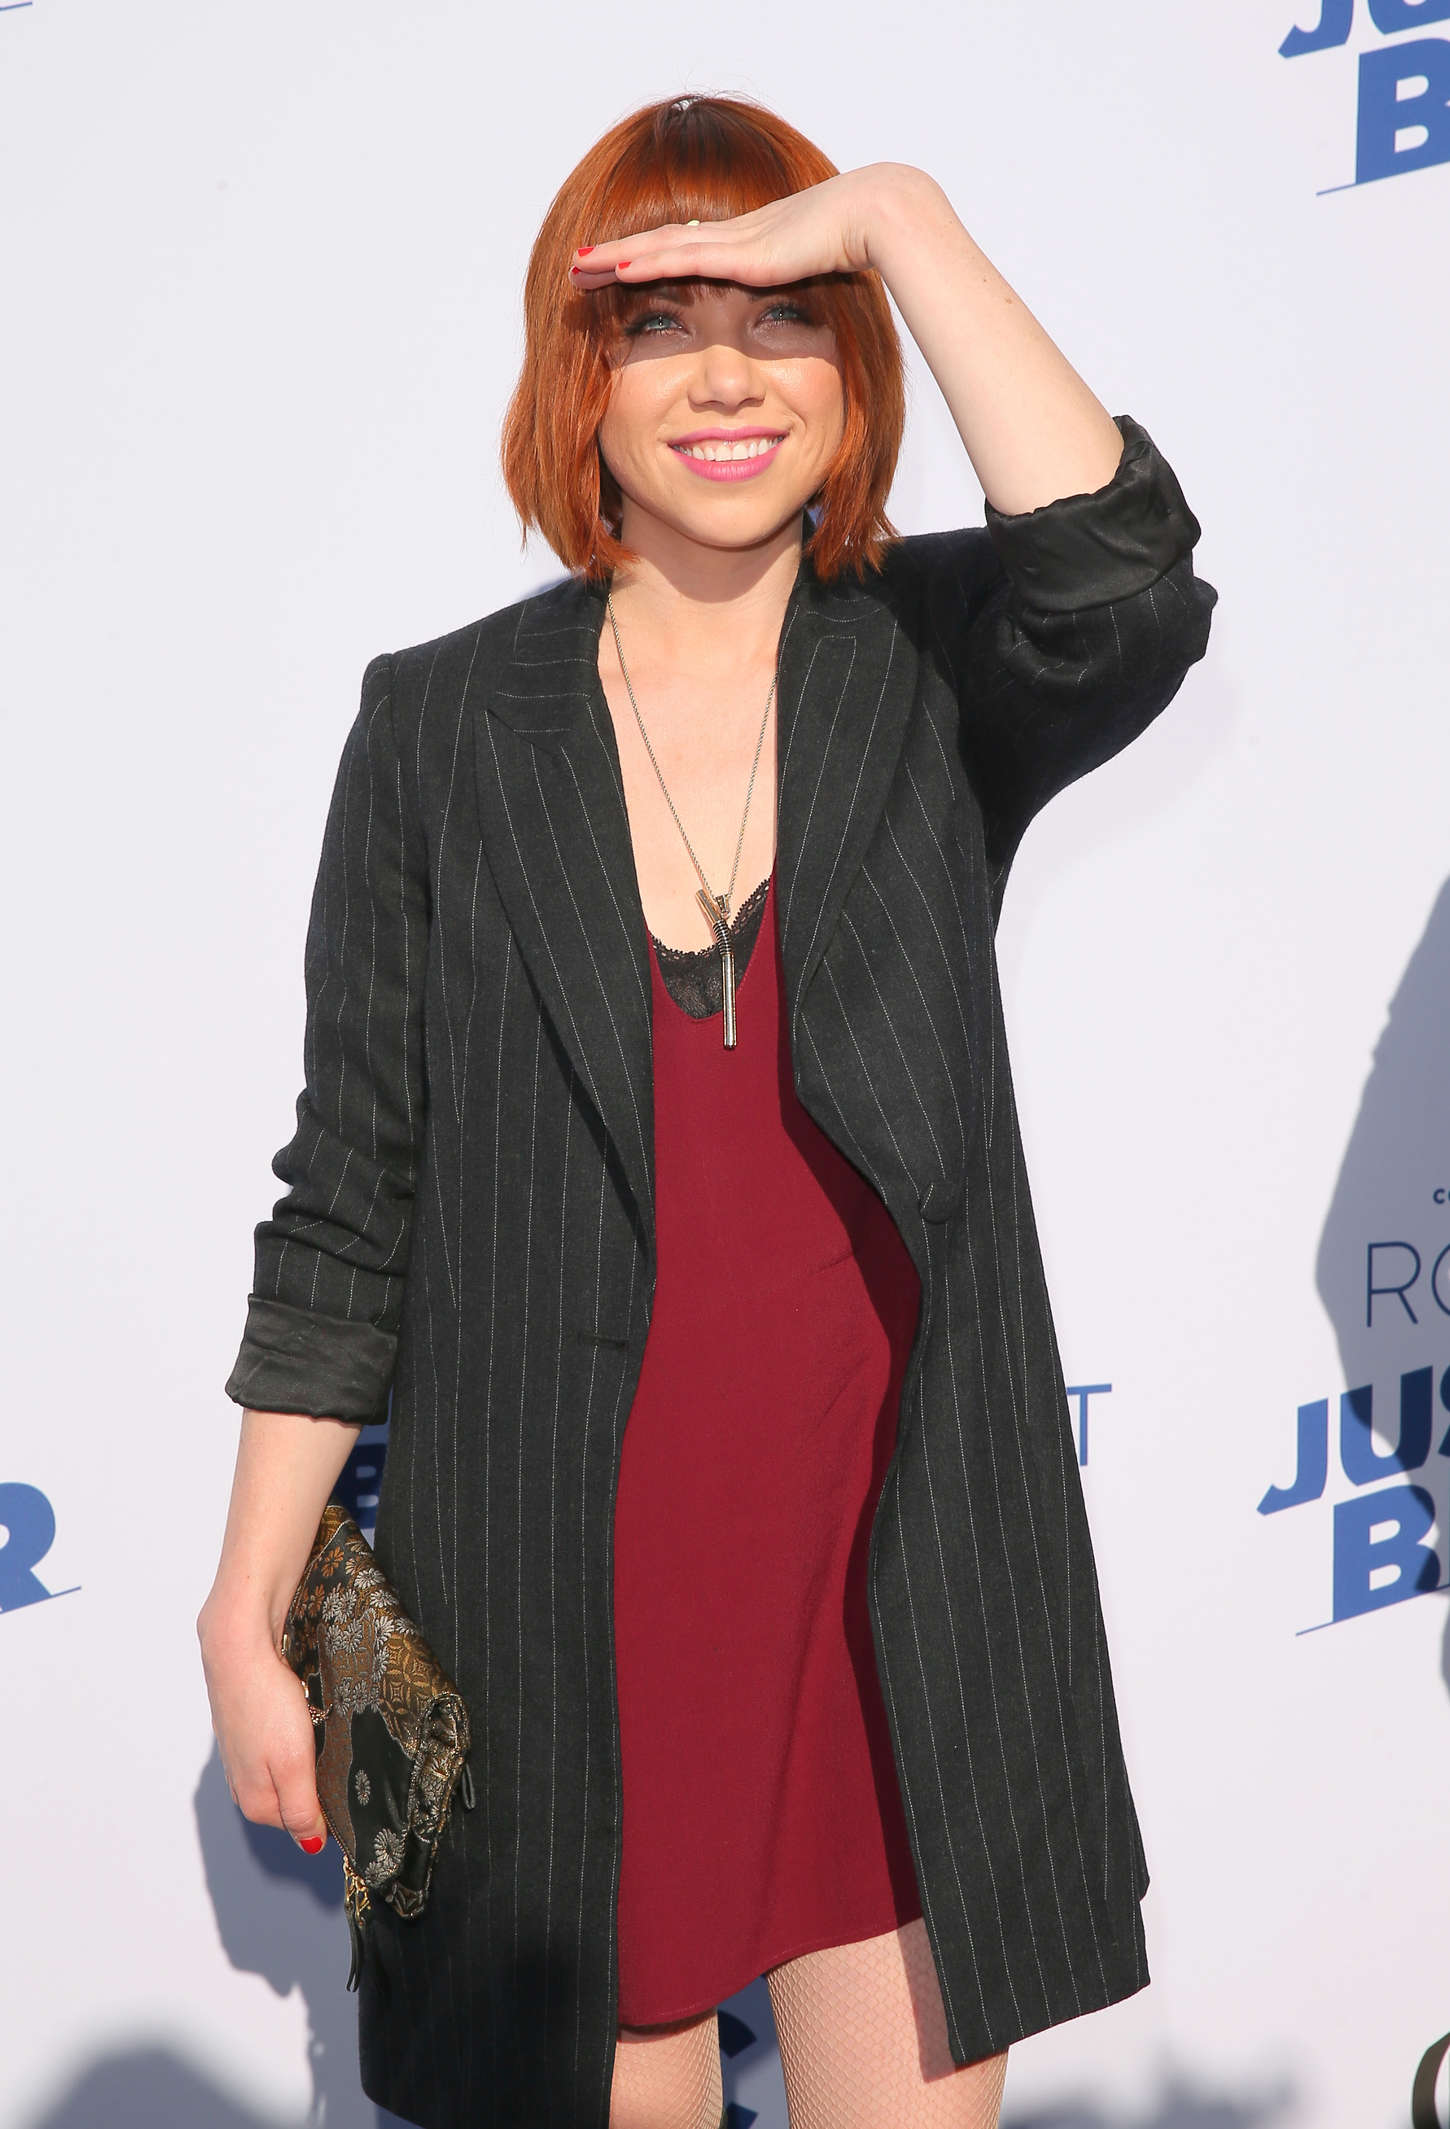 Carly Rae Jepsen The Comedy Central Roast Of Justin Bieber in Los Angeles